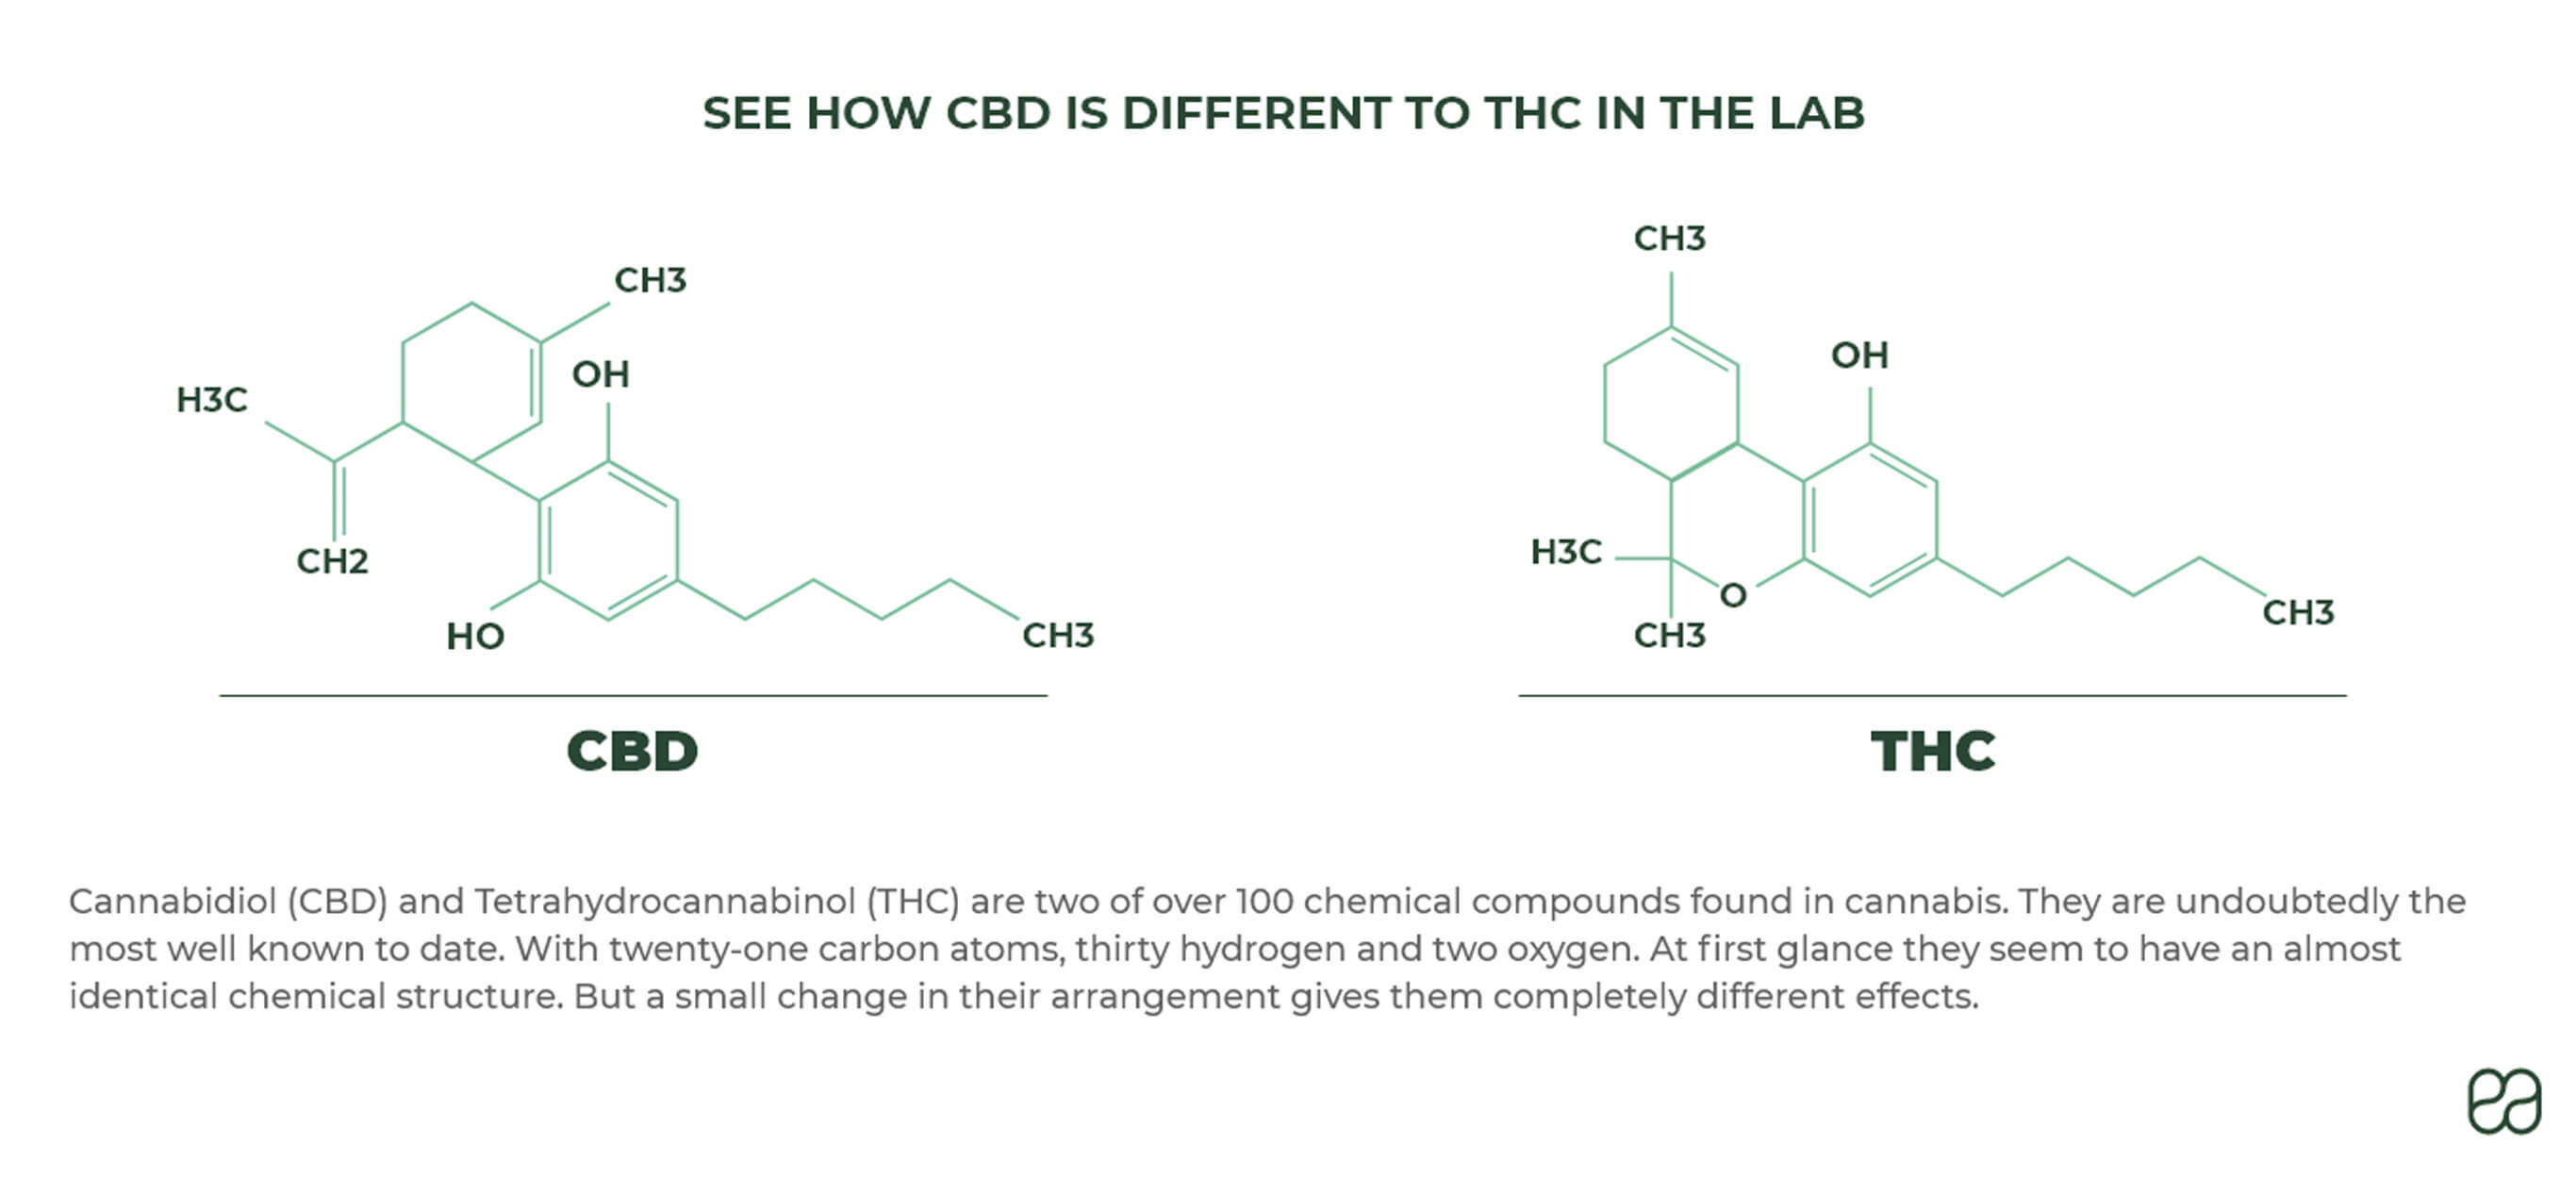 See how CBD is different to THC in the lab: CBD and THC have almost identical chemical structure, only a small change in their chemical arrangement makes them different.